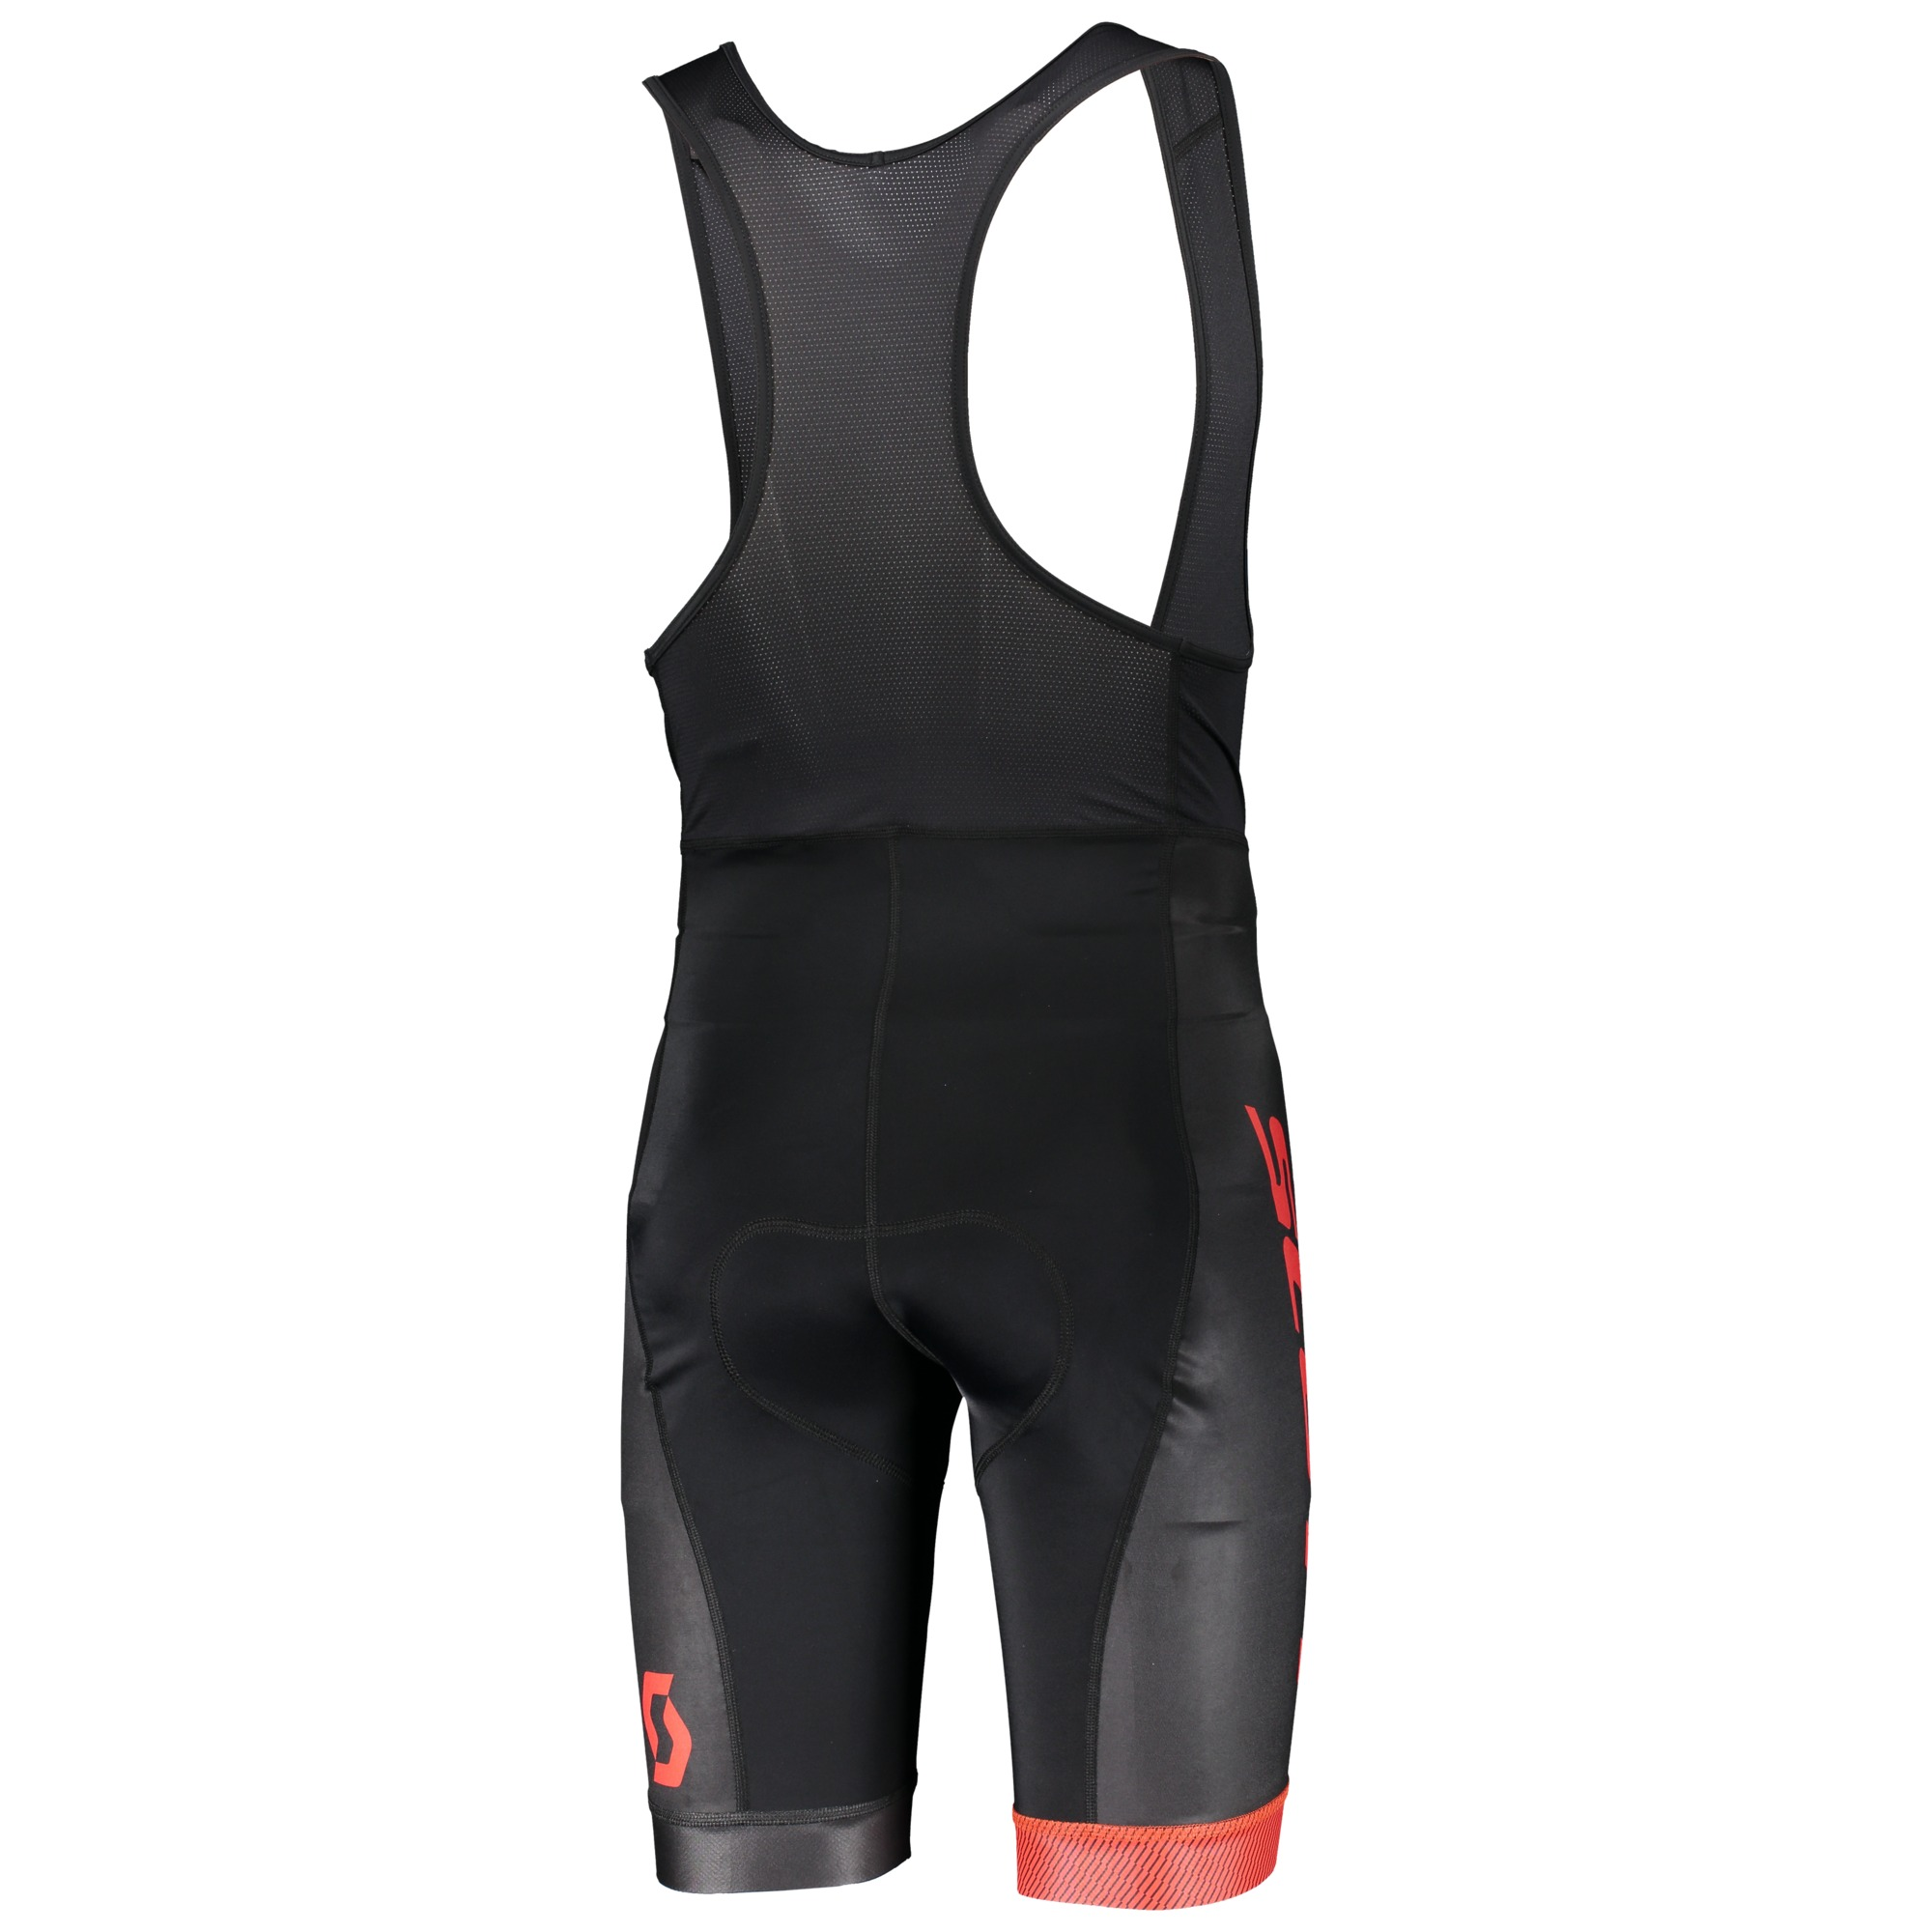 Culotte con tirantes RC Team ++ SCOTT